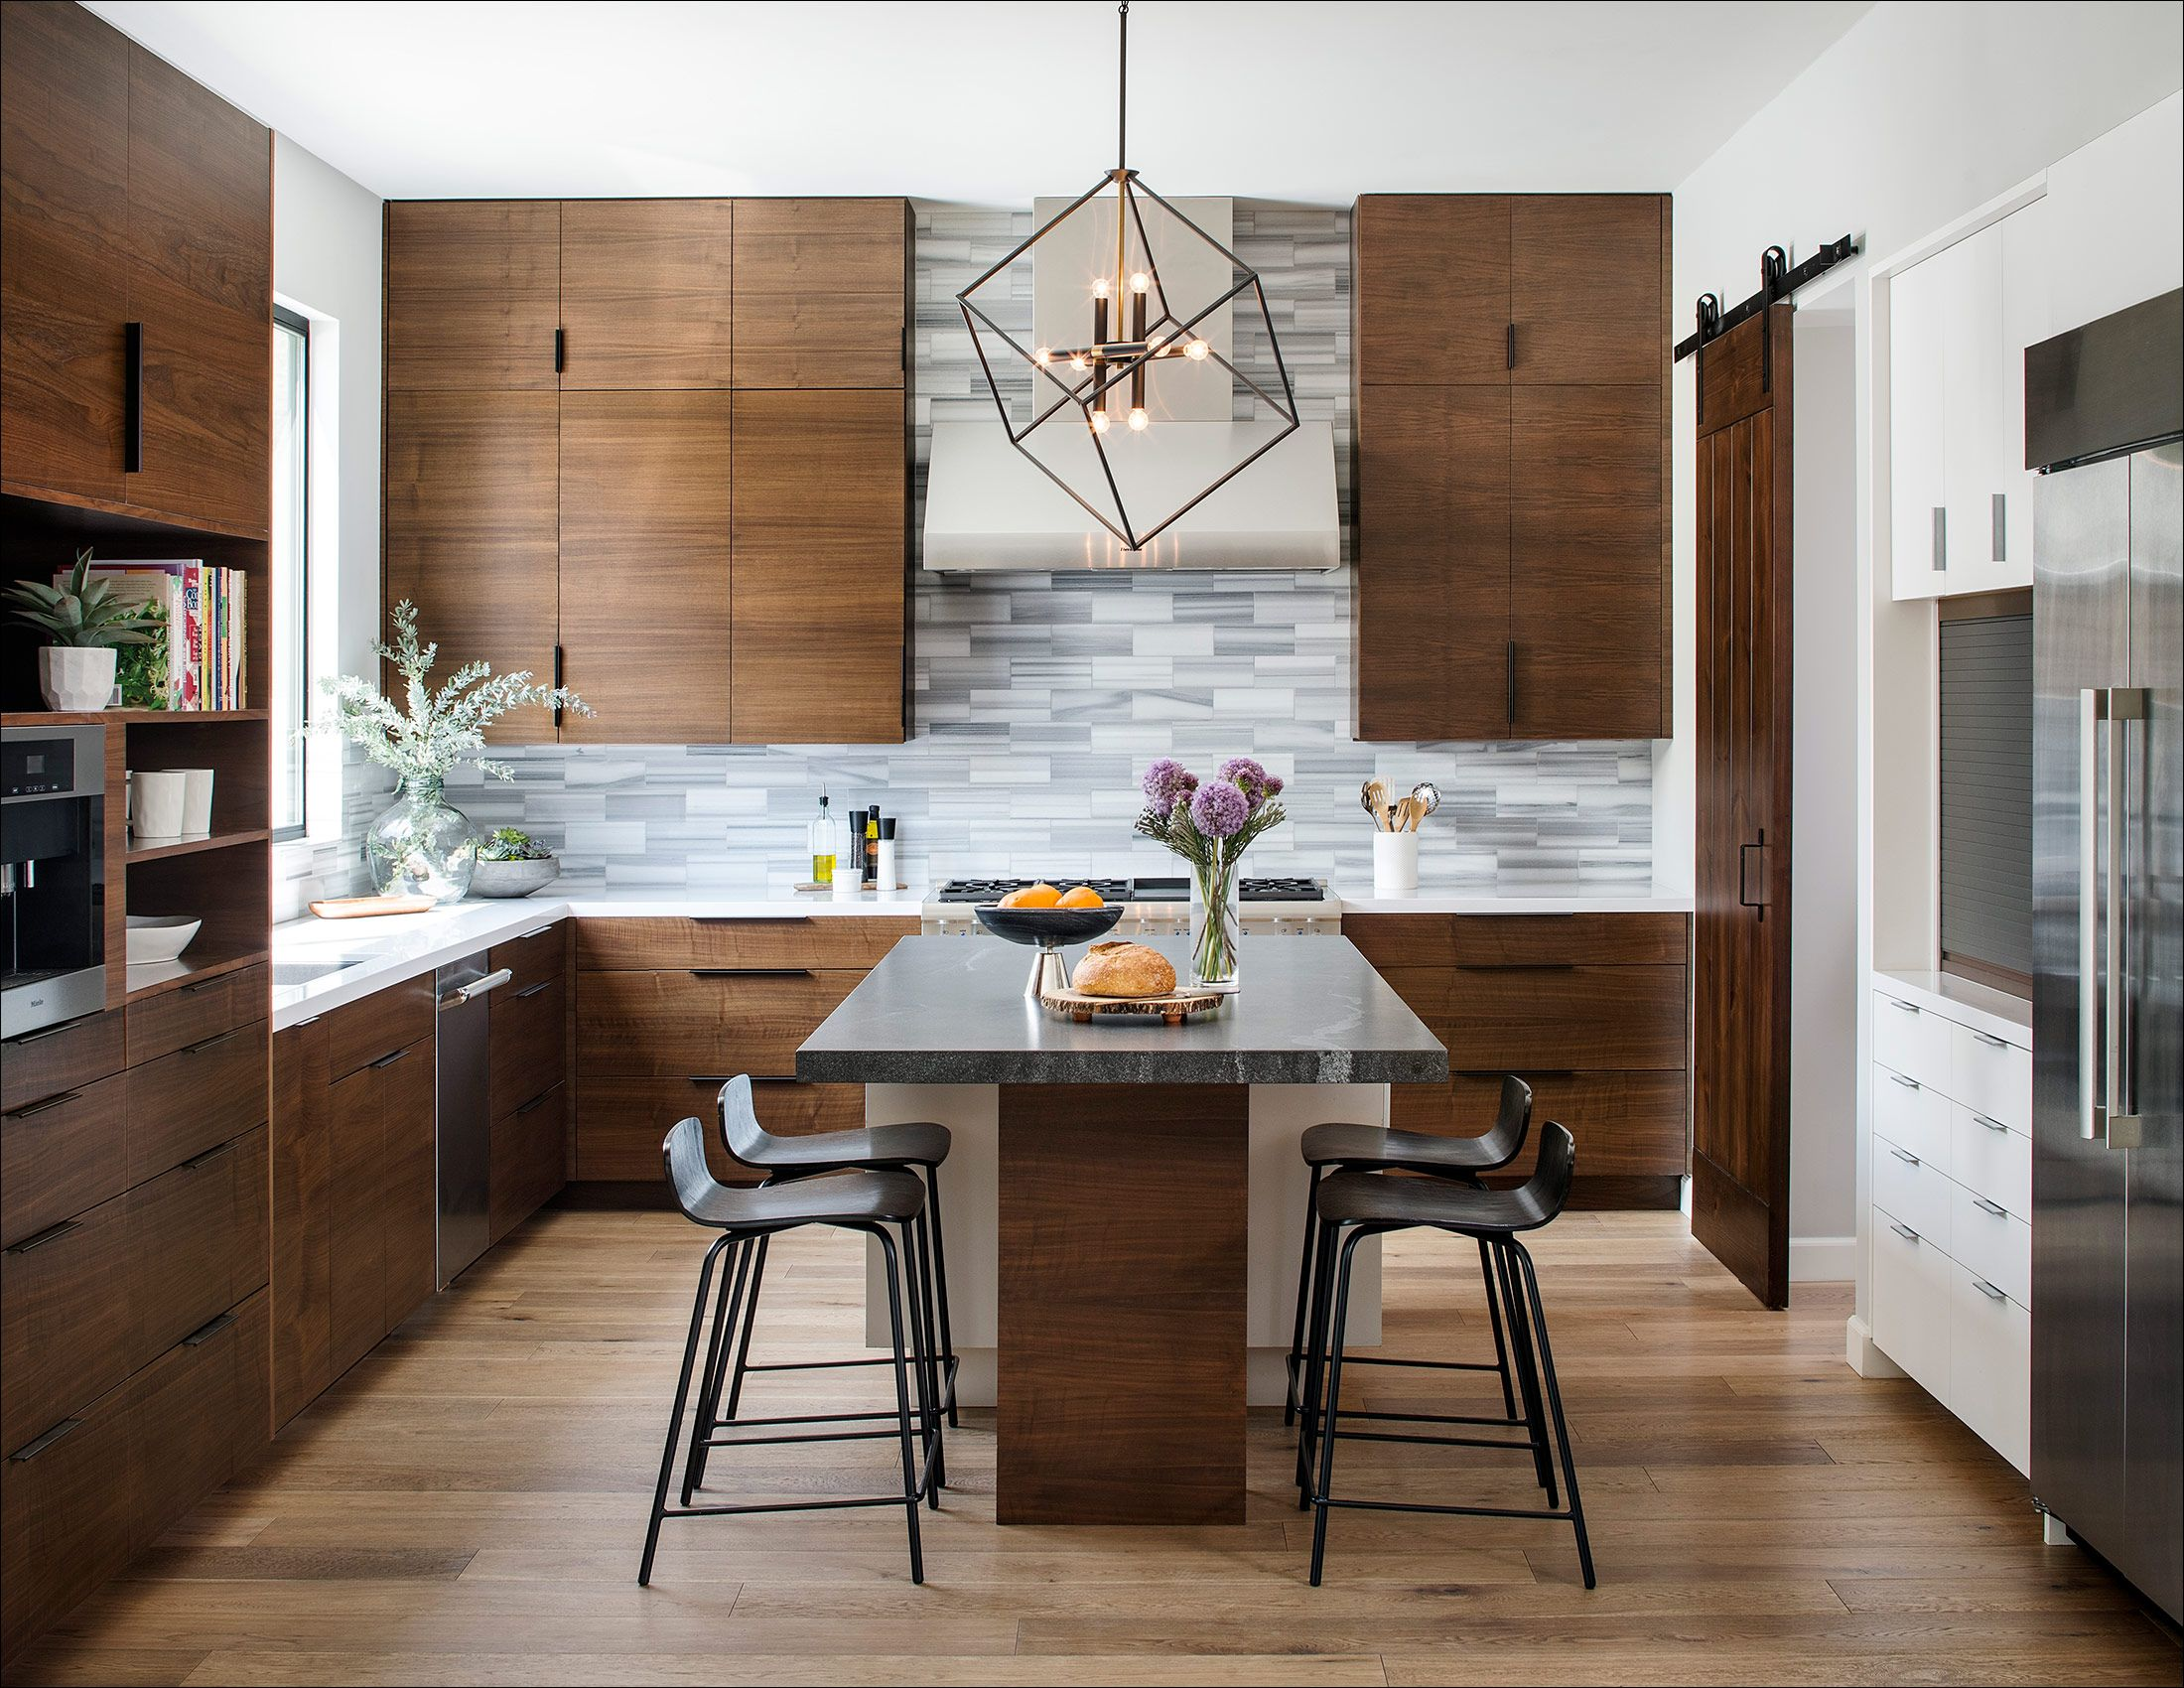 KWDesign_Encinitas_CustomWoodCabinet_Kitchen.jpg